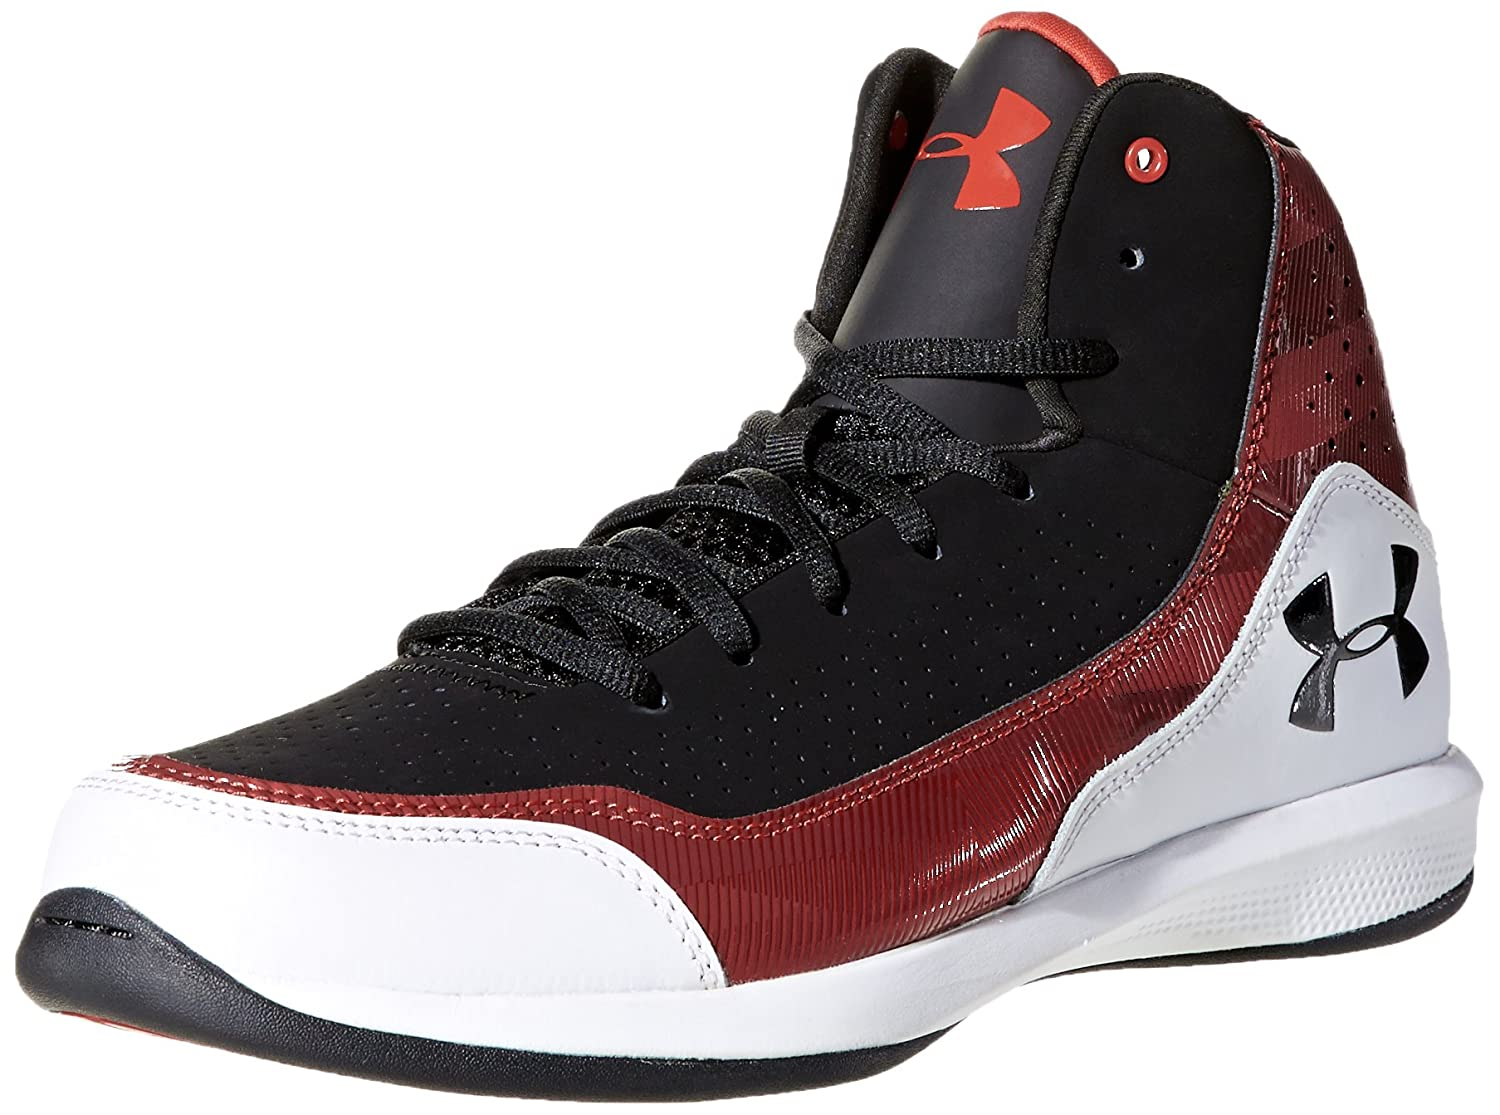 Under Armour Men s Basketball Shoes black   white   red  Amazon.co.uk   Shoes   Bags d475b6504dc